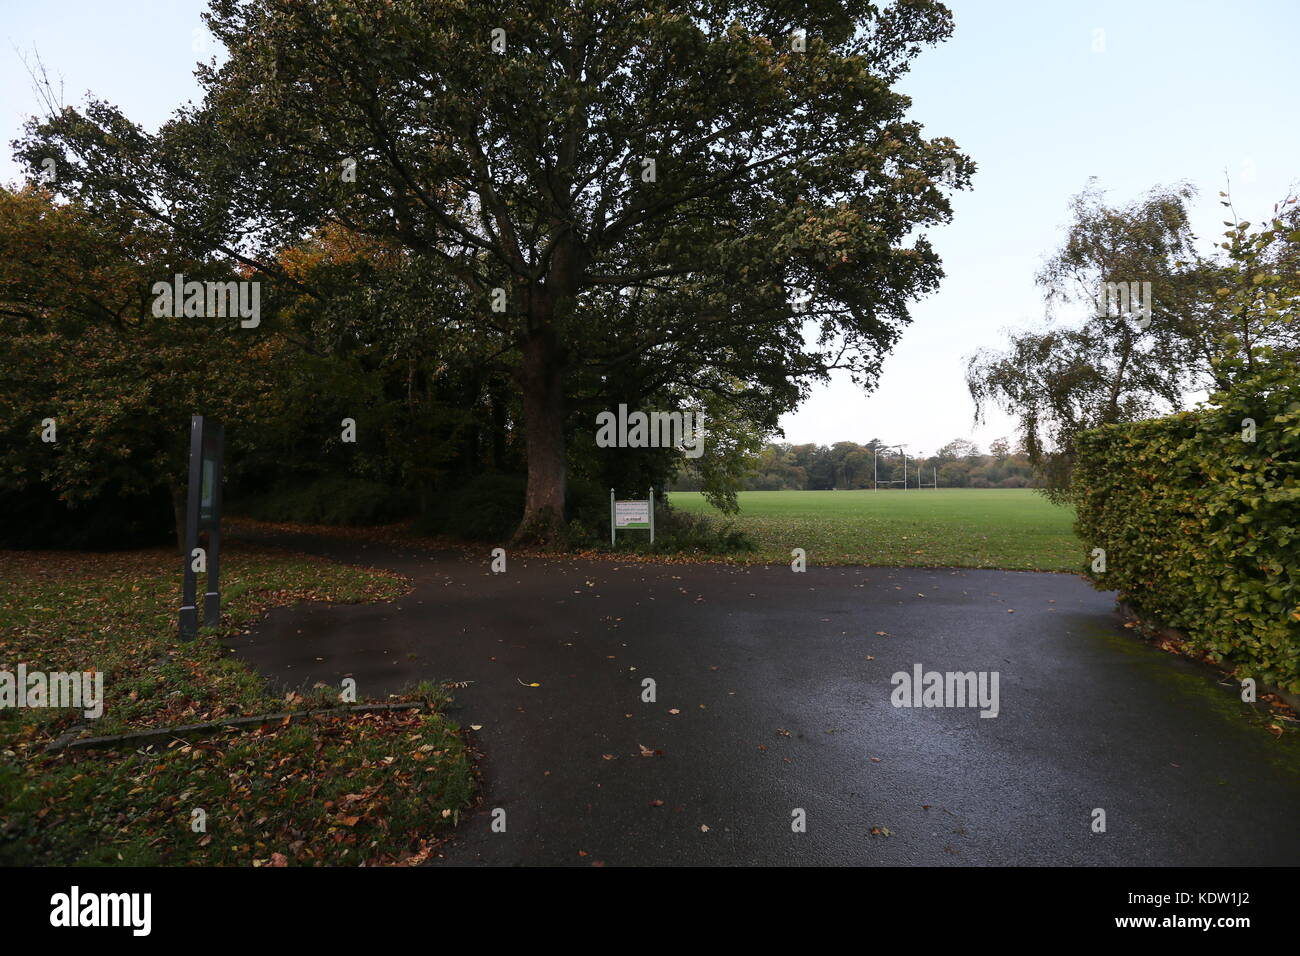 Dublin, Ireland. 16th Oct, 2017. A view of the inside of Marlay Park in Dublin. All parks in the Irish capital closed - Stock Image